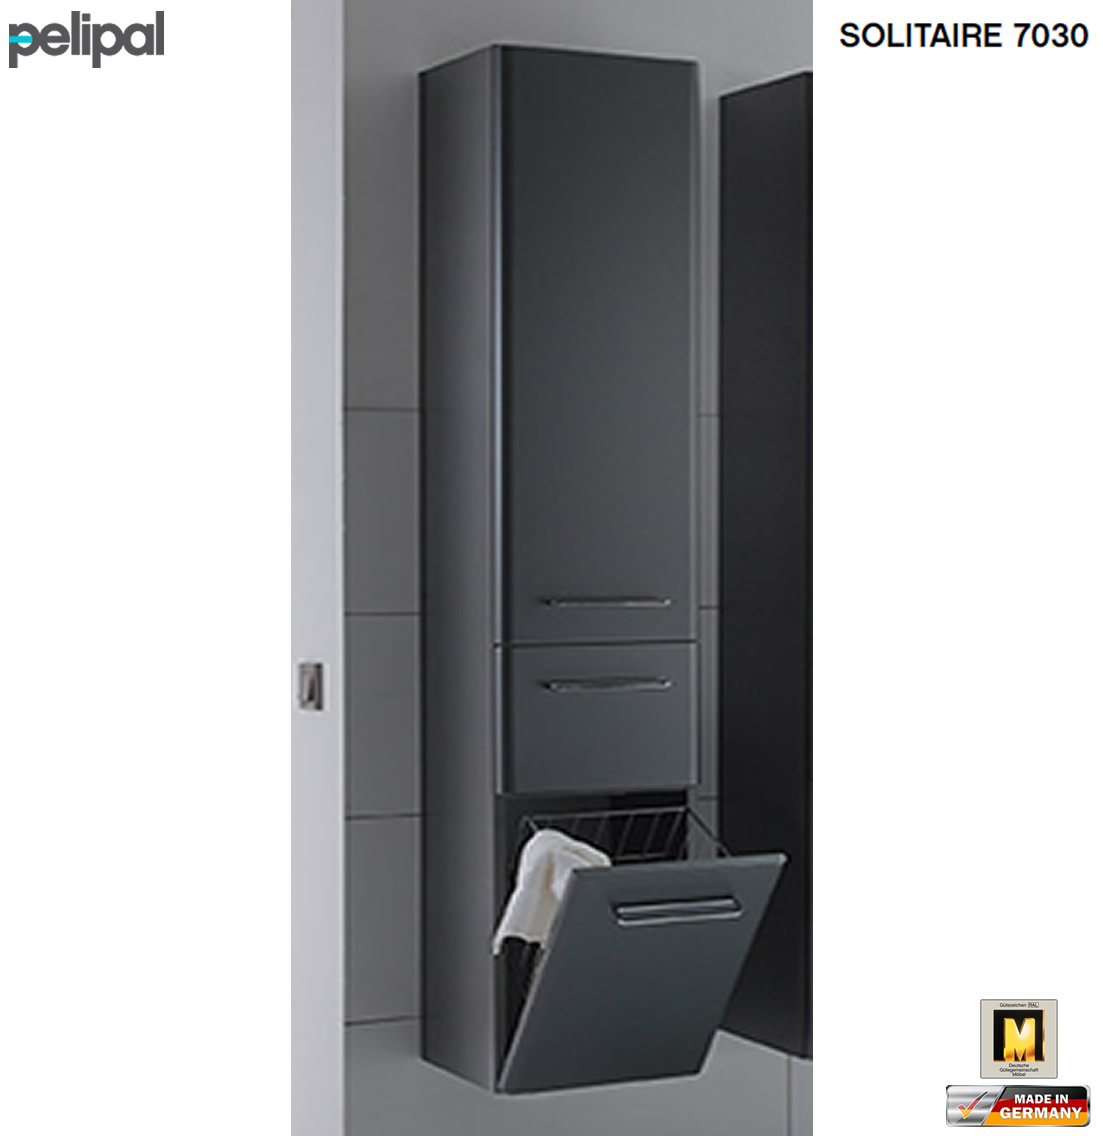 pelipal solitaire 7030 hochschrank 45 cm breite mit w schekippe 1 t r 1 auszug impuls home. Black Bedroom Furniture Sets. Home Design Ideas